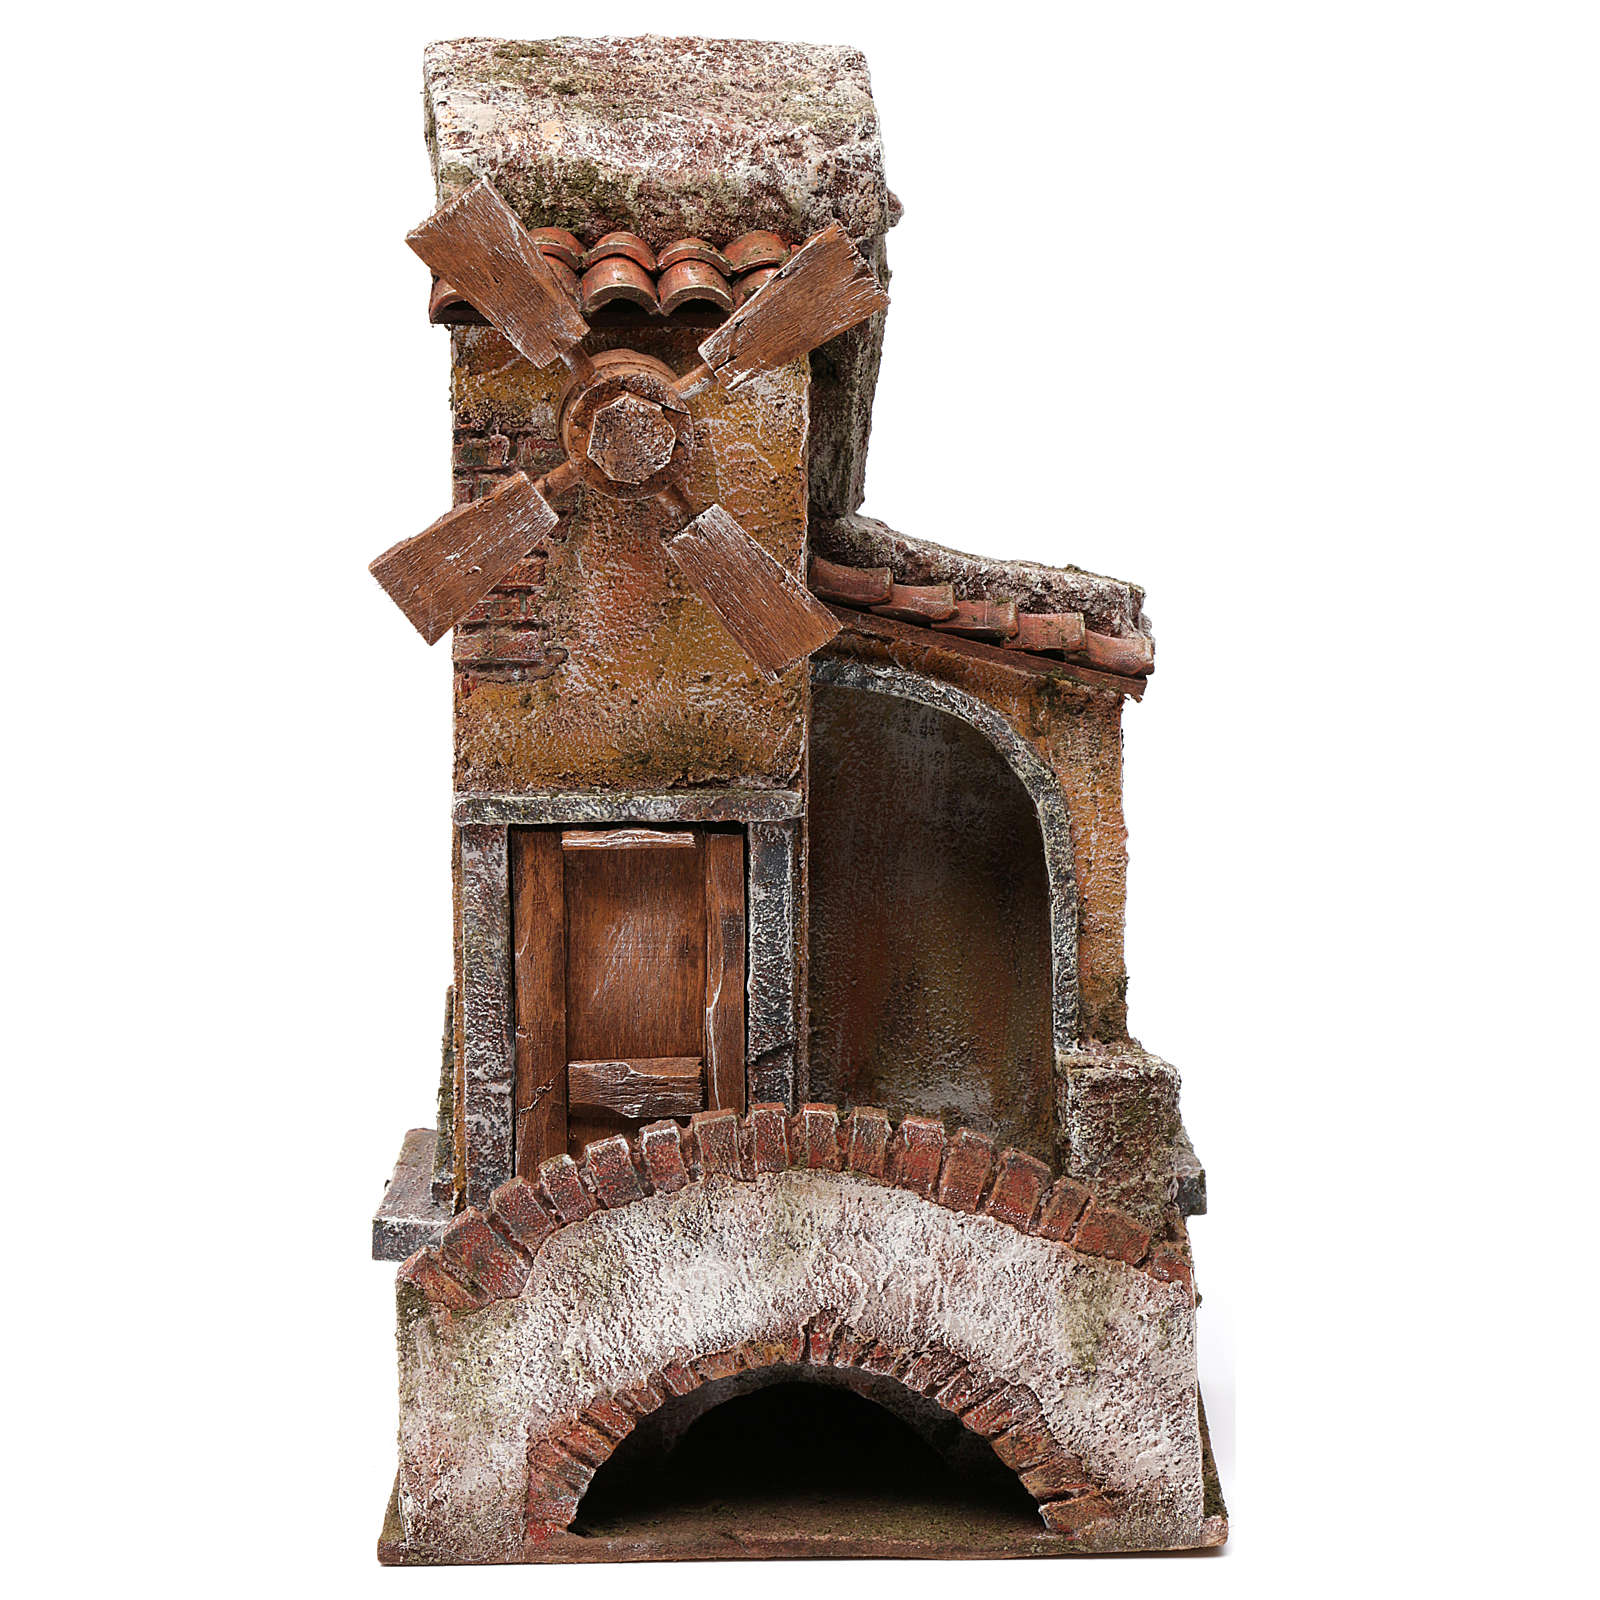 Mill for nativity 4 turbines with bridge,steps and tile roof 35X15X20 cm 4